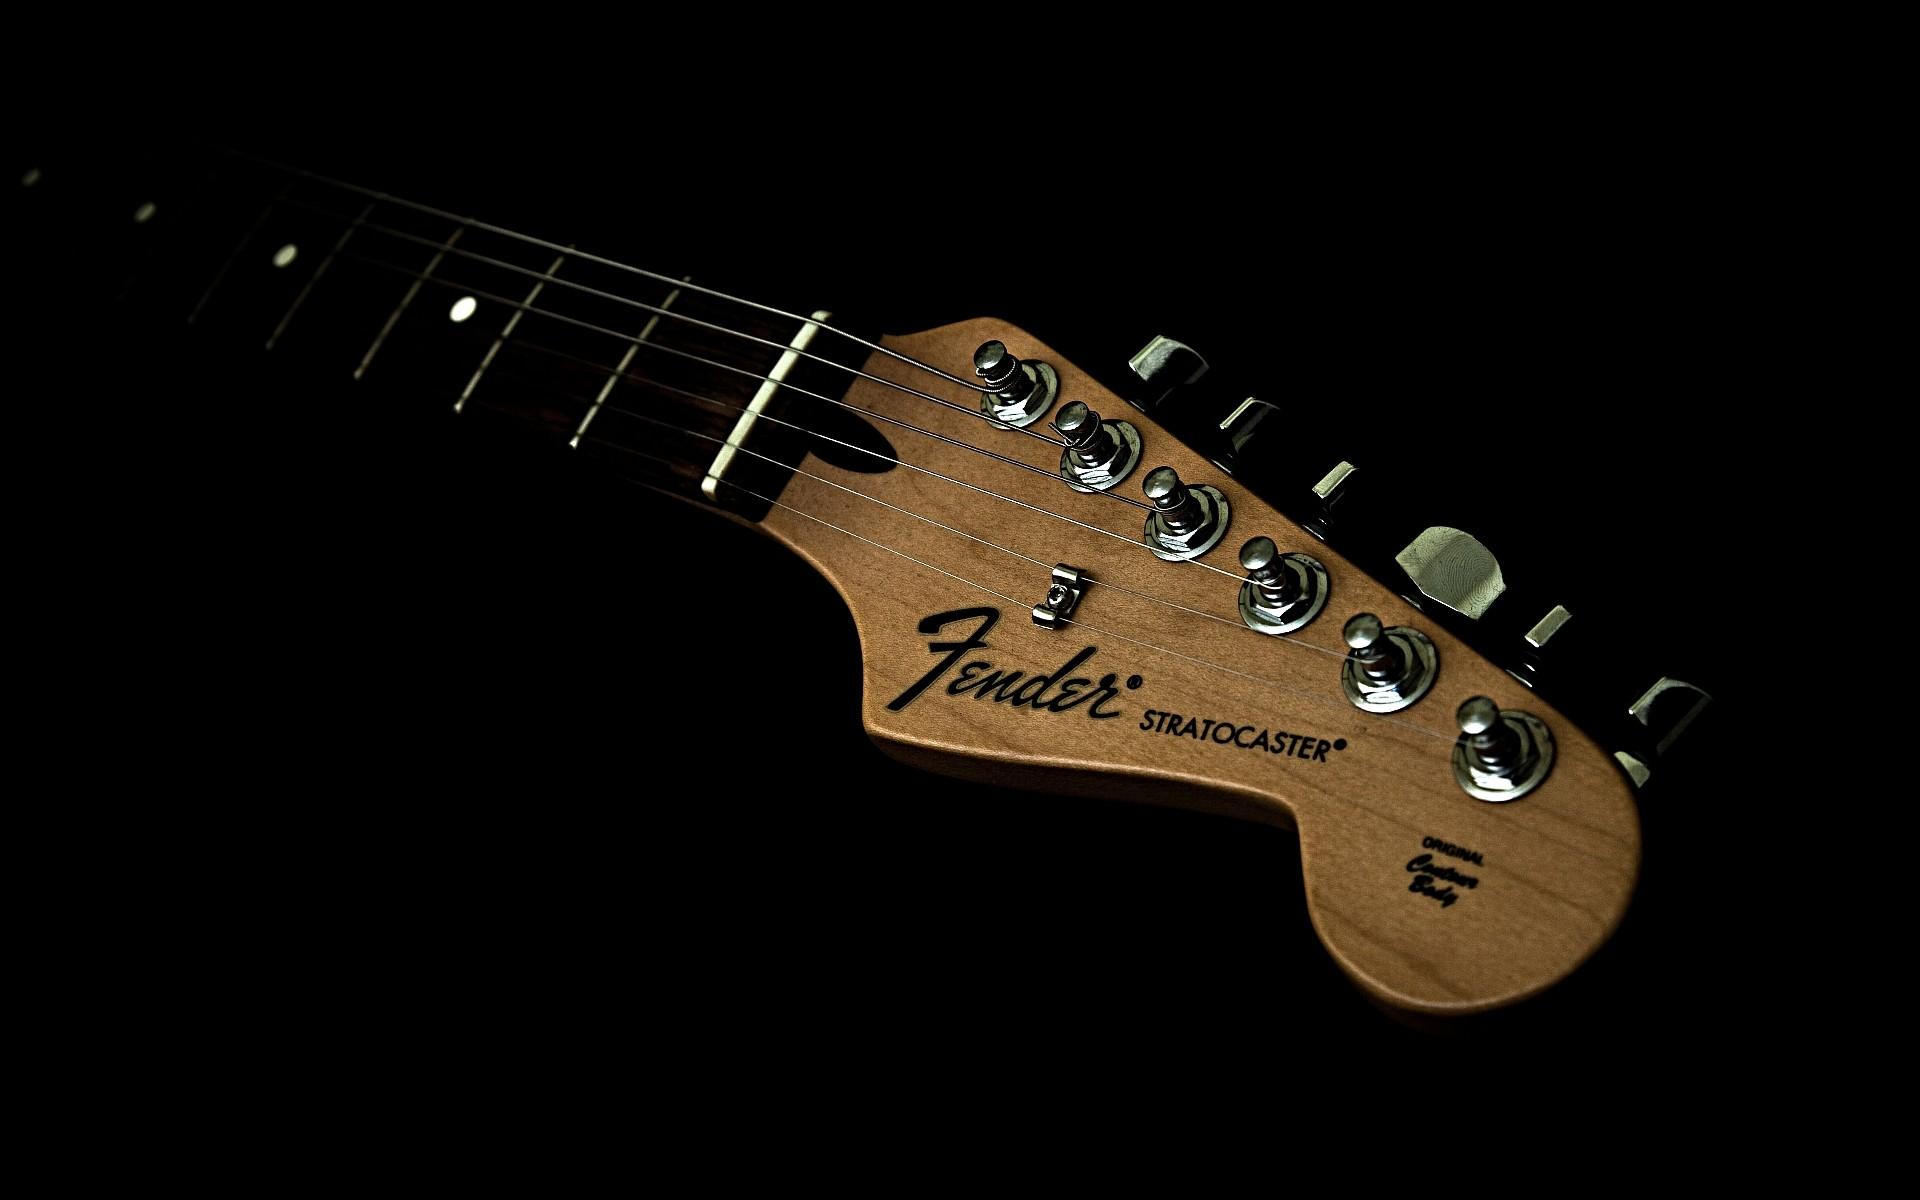 Fender Background Winter Stratocaster wallpapers HD free – 152879